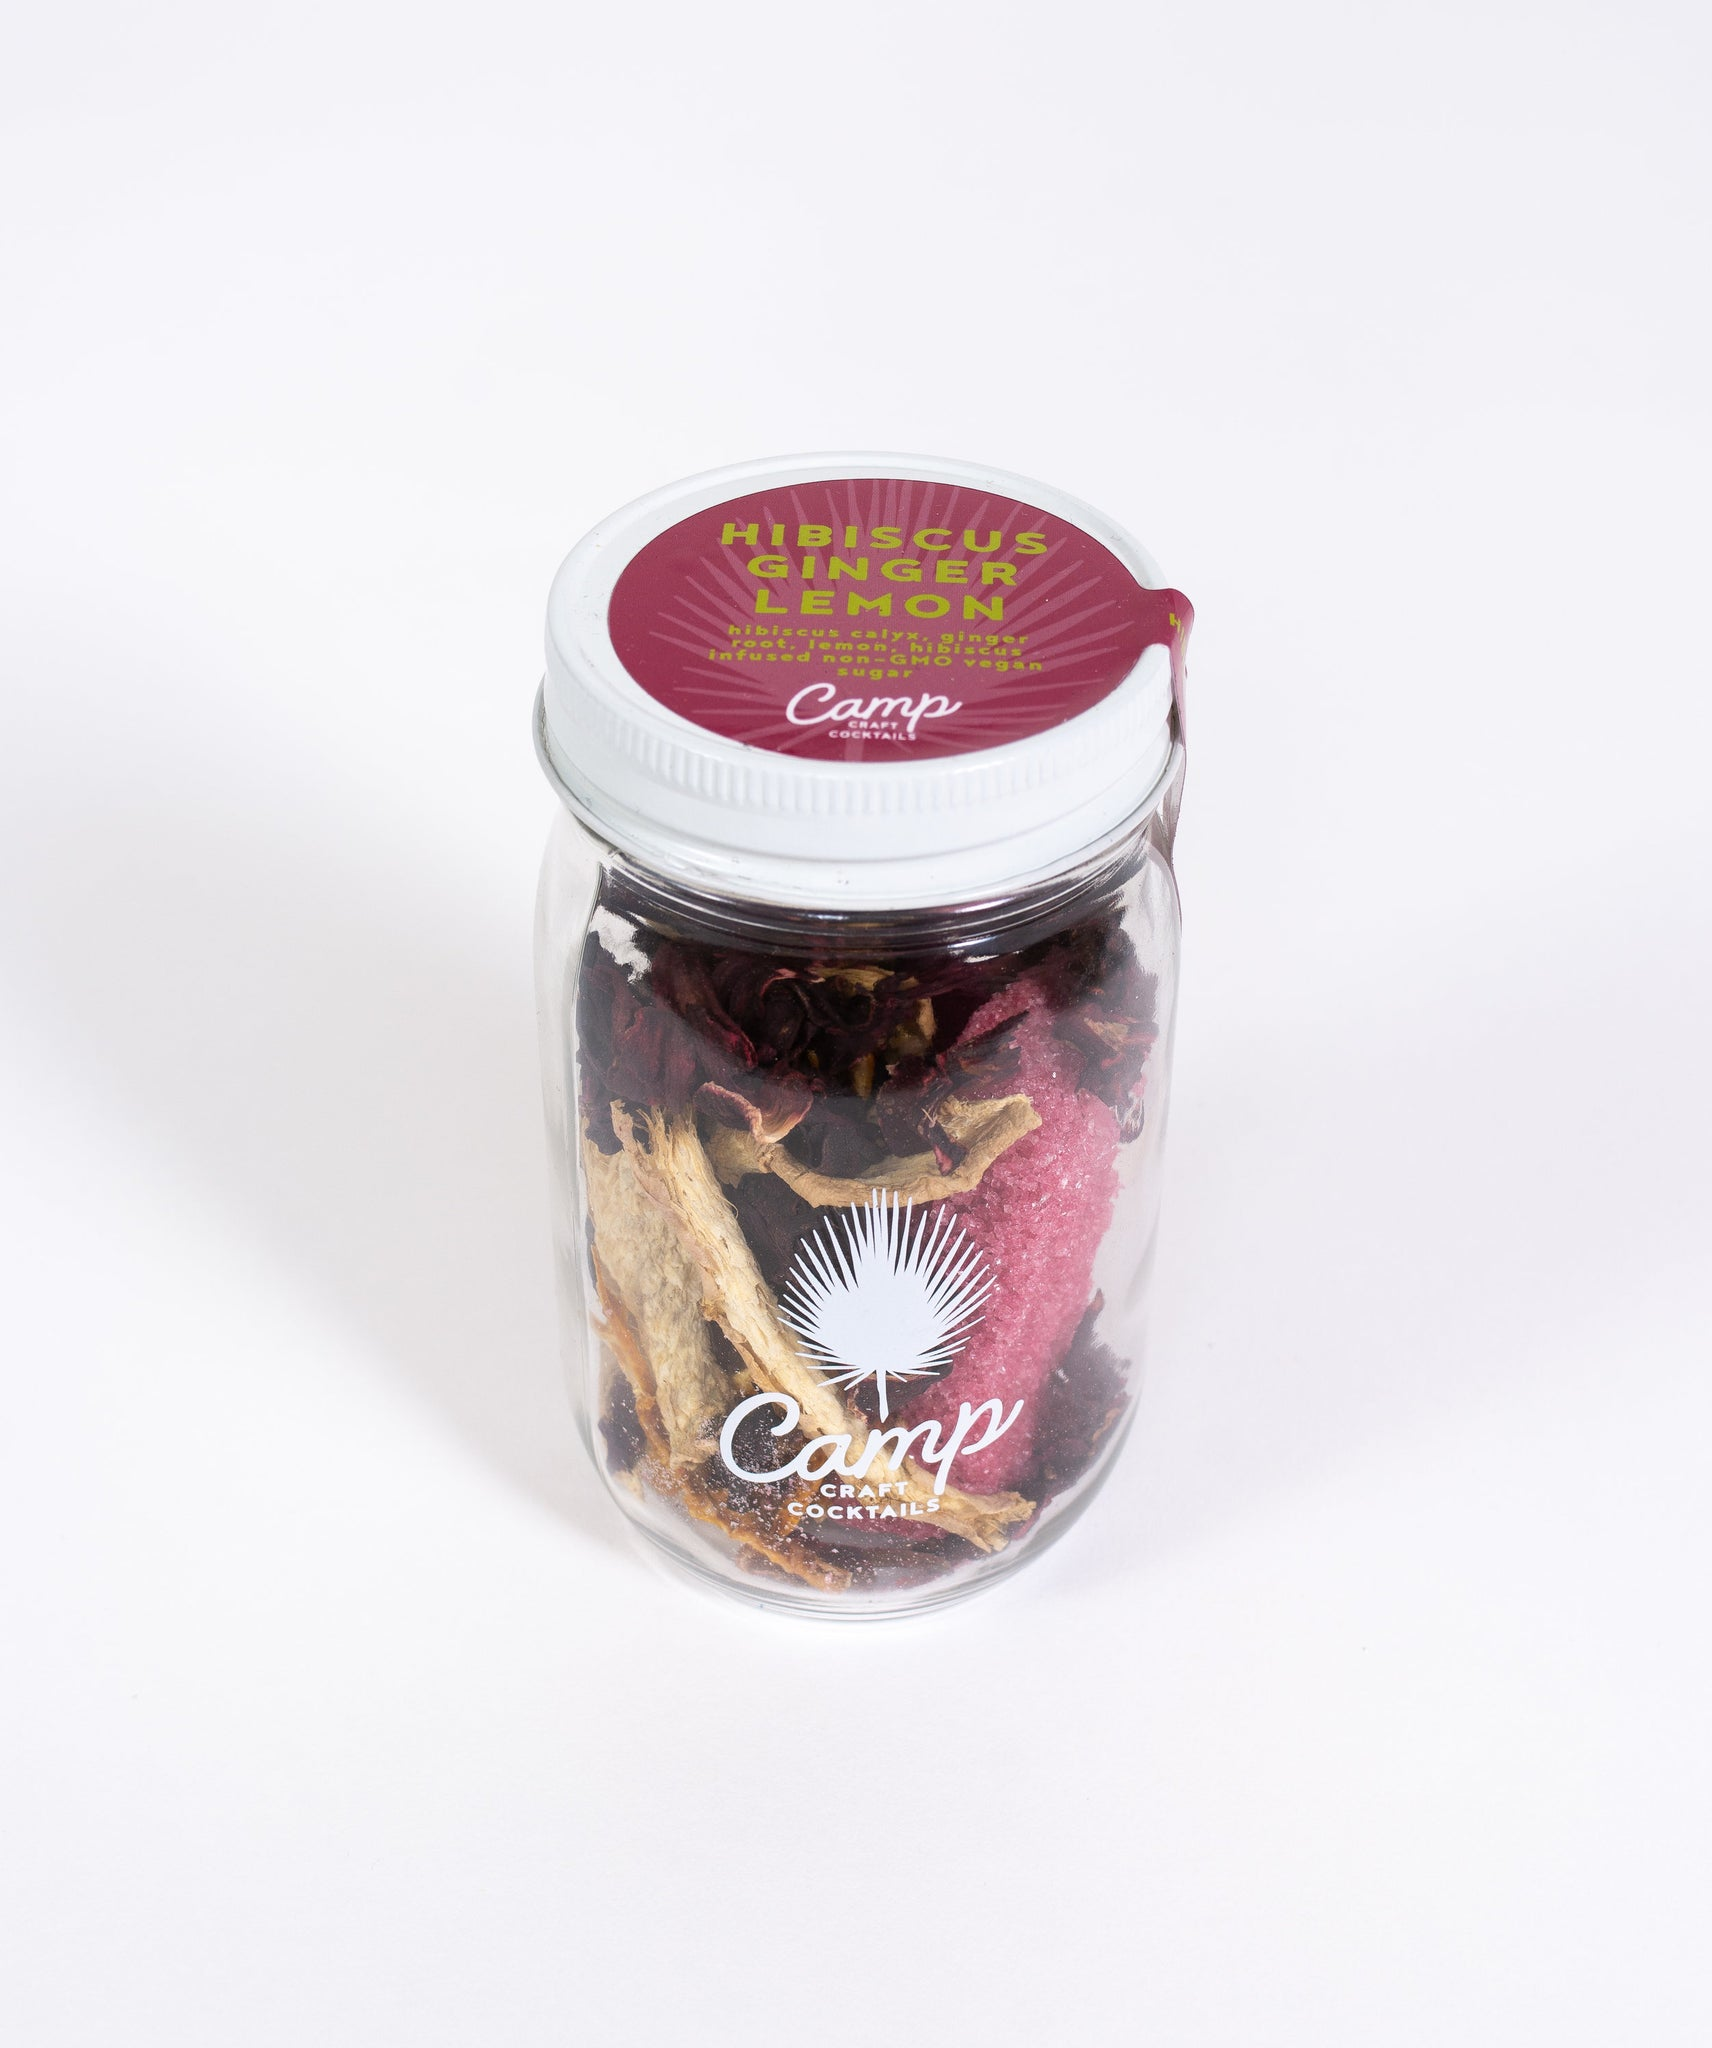 Craft Cocktail In a Jar Kit - Hibiscus Ginger Lemon